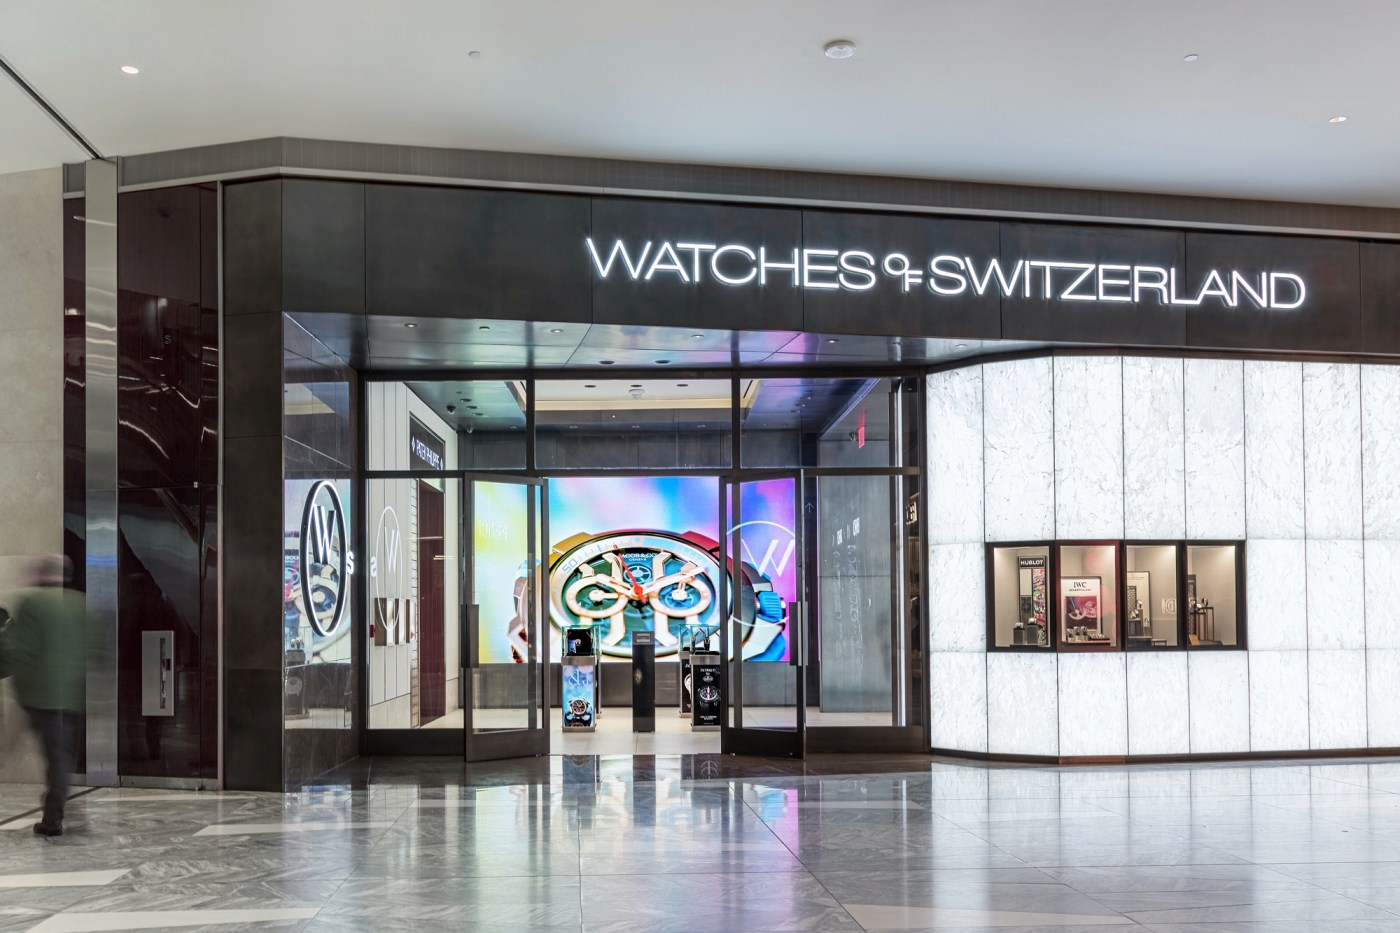 Watches of Switzerland Hudson Yards by Liam Odonnell